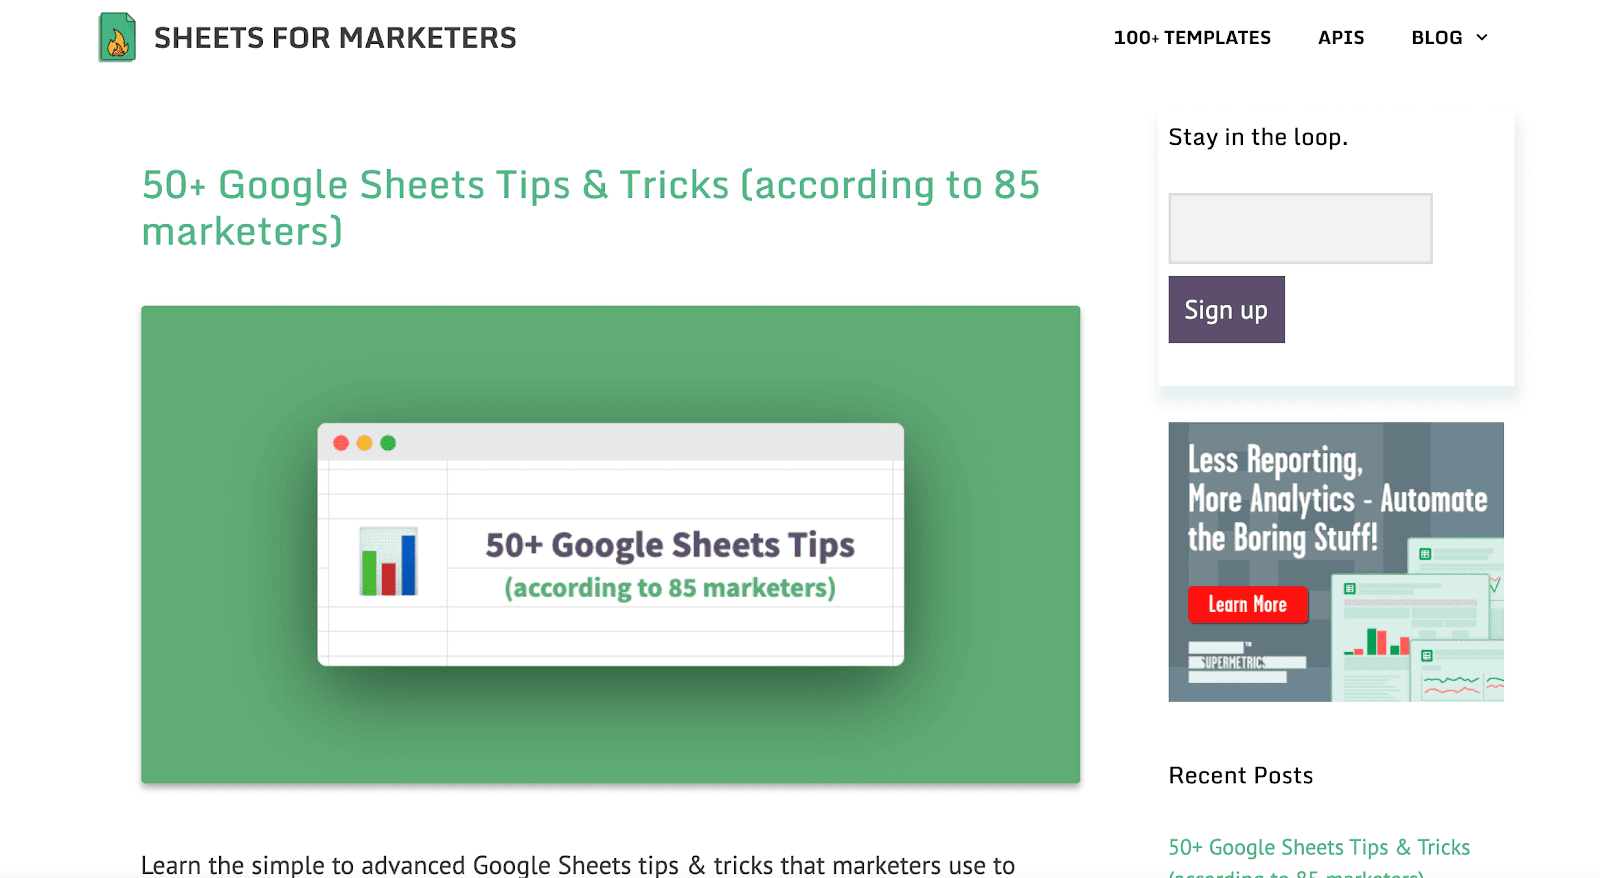 Sheets for Marketers blog page